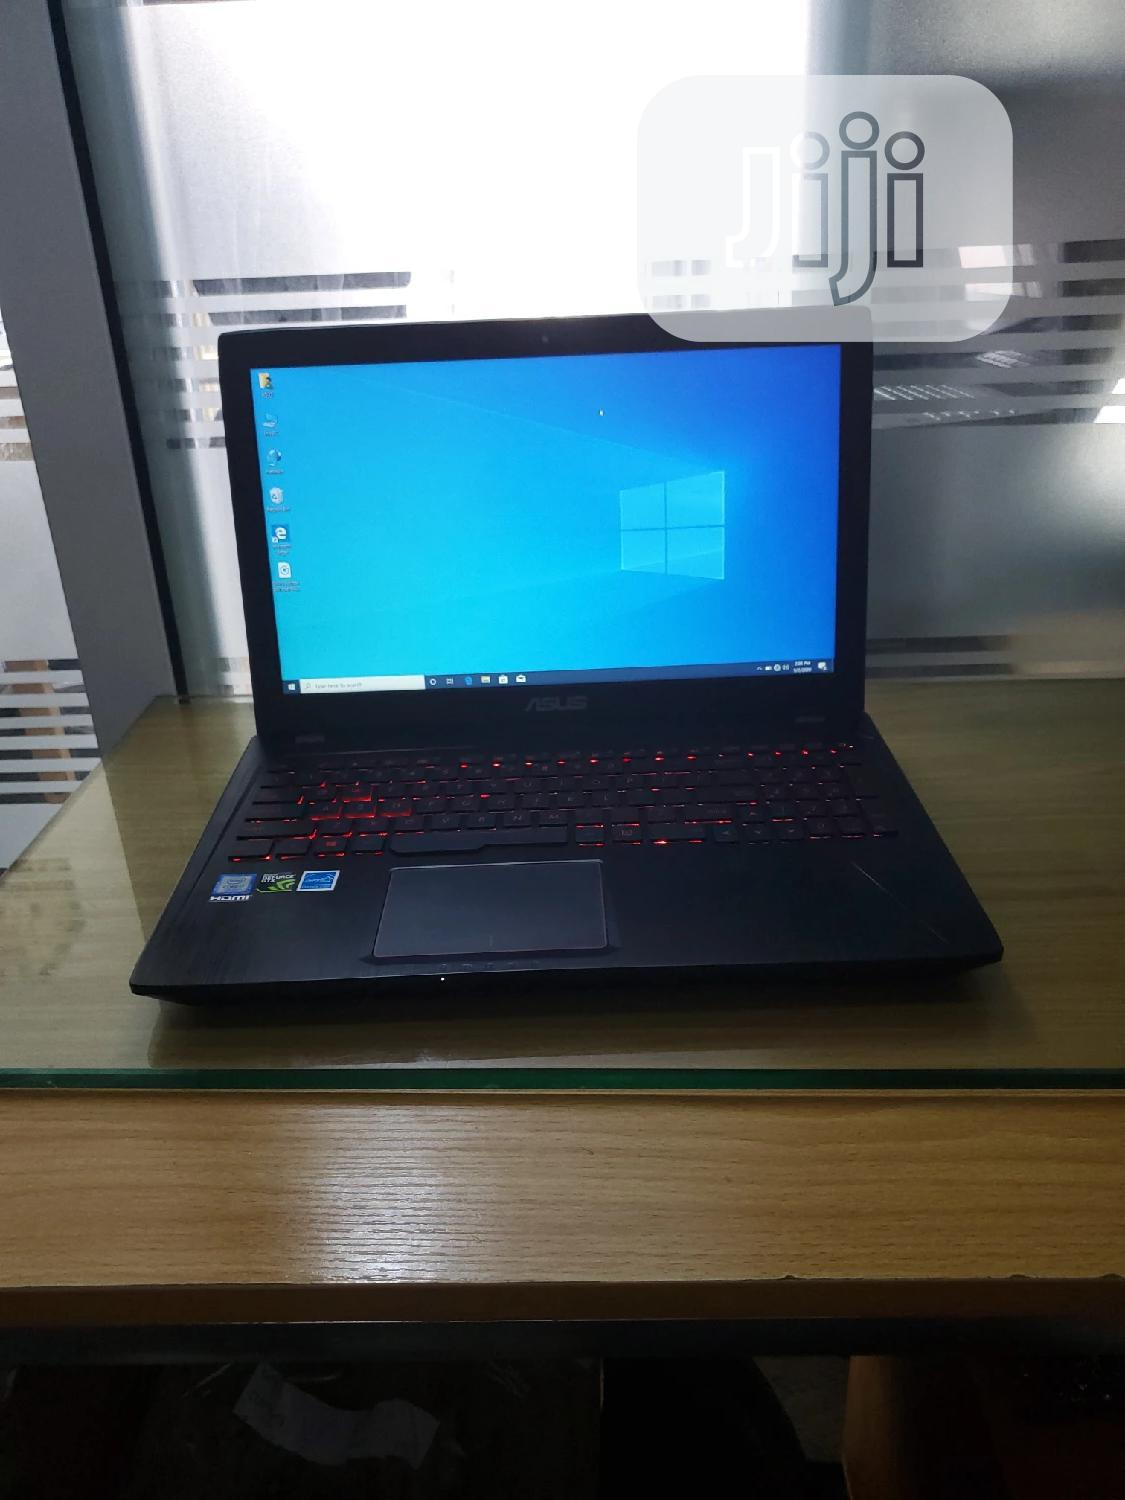 Laptop Asus ROG GL553VD 8GB Intel Core I7 SSD 256GB   Laptops & Computers for sale in Ikeja, Lagos State, Nigeria